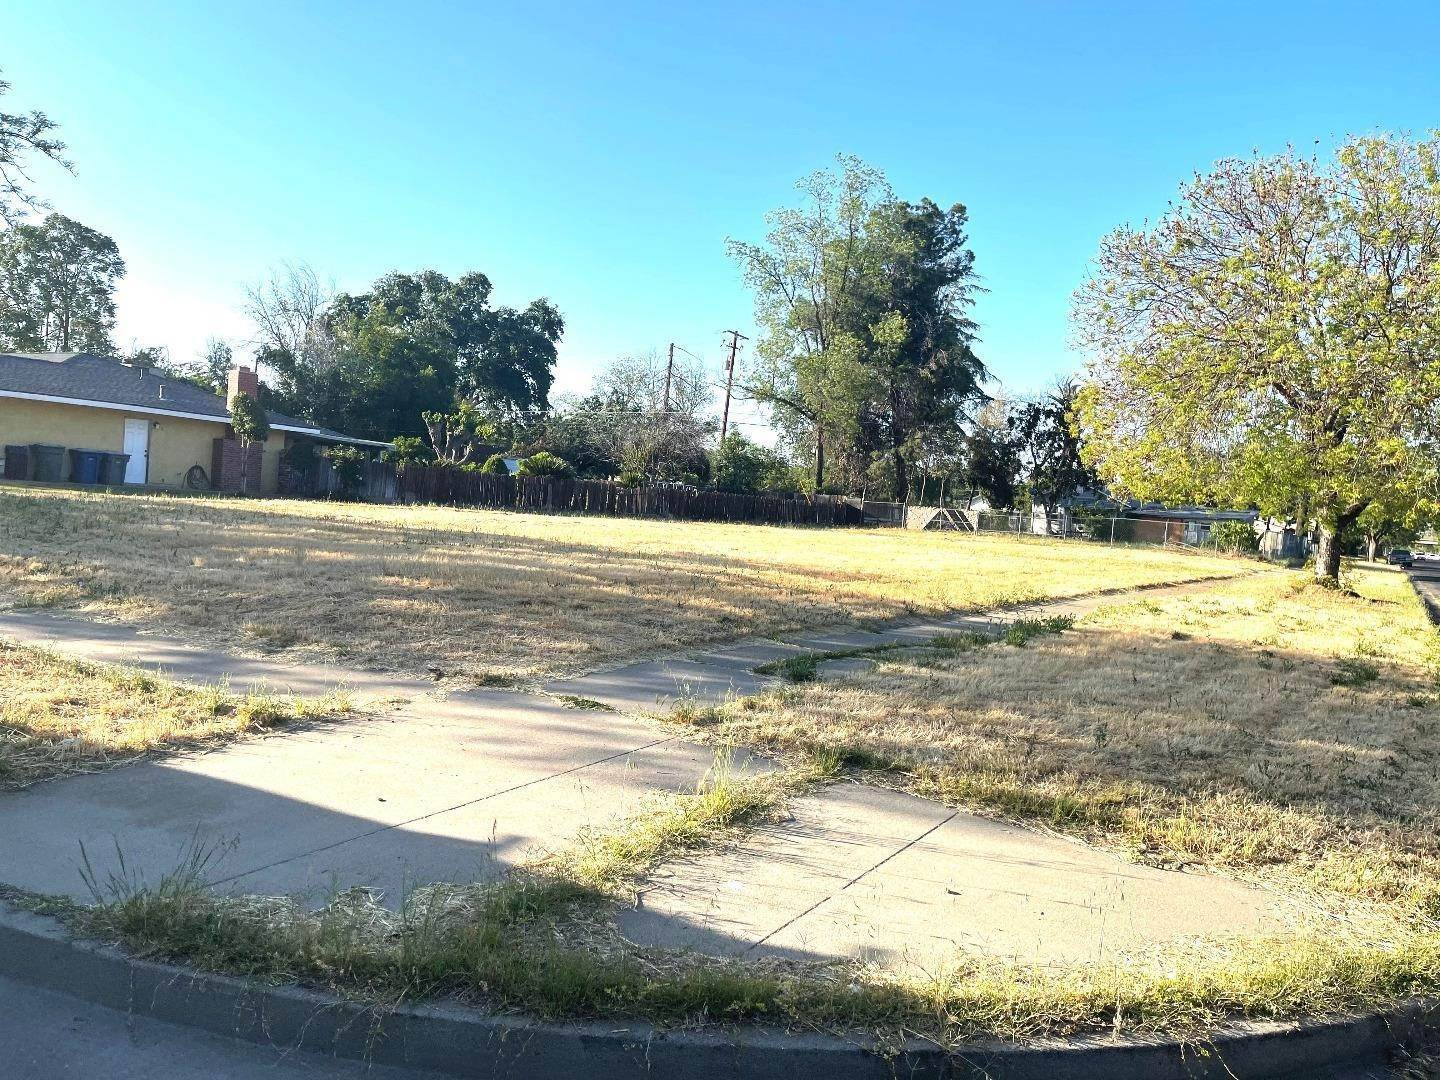 Land for Sale at 805 W 10th Street Merced, California 95341 United States